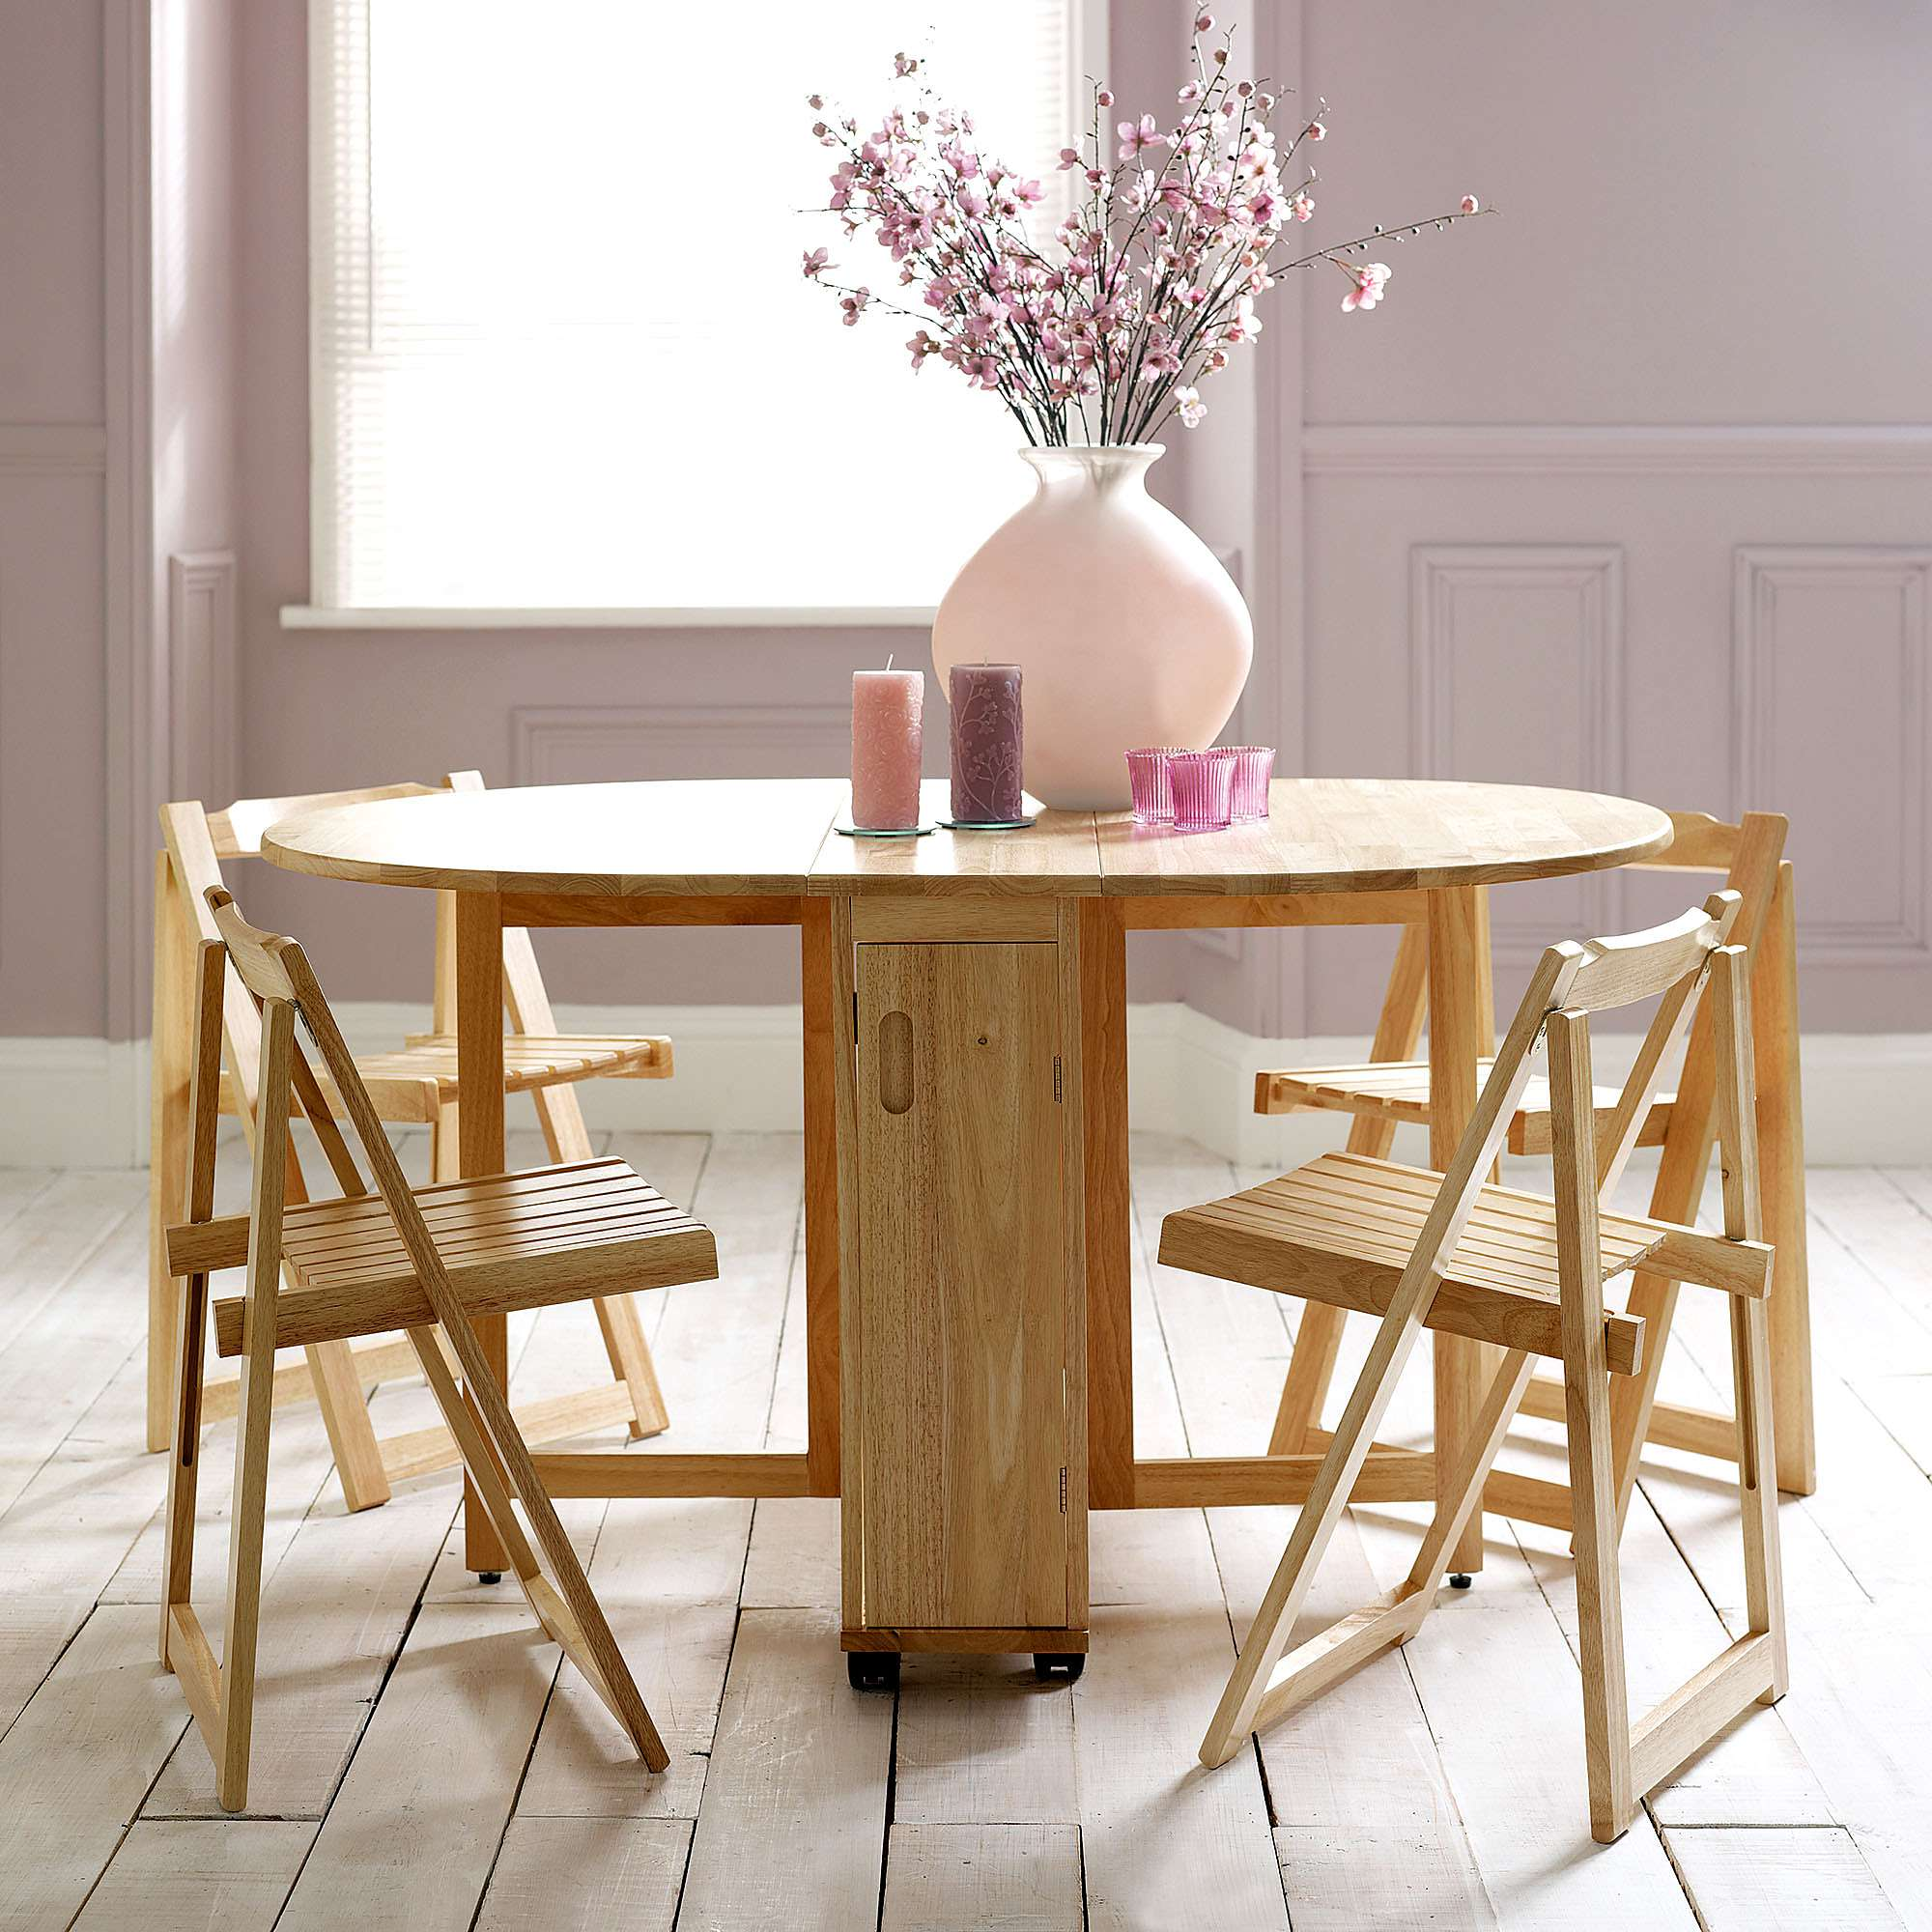 Choose a folding dining table for a small space adorable for Dining table space